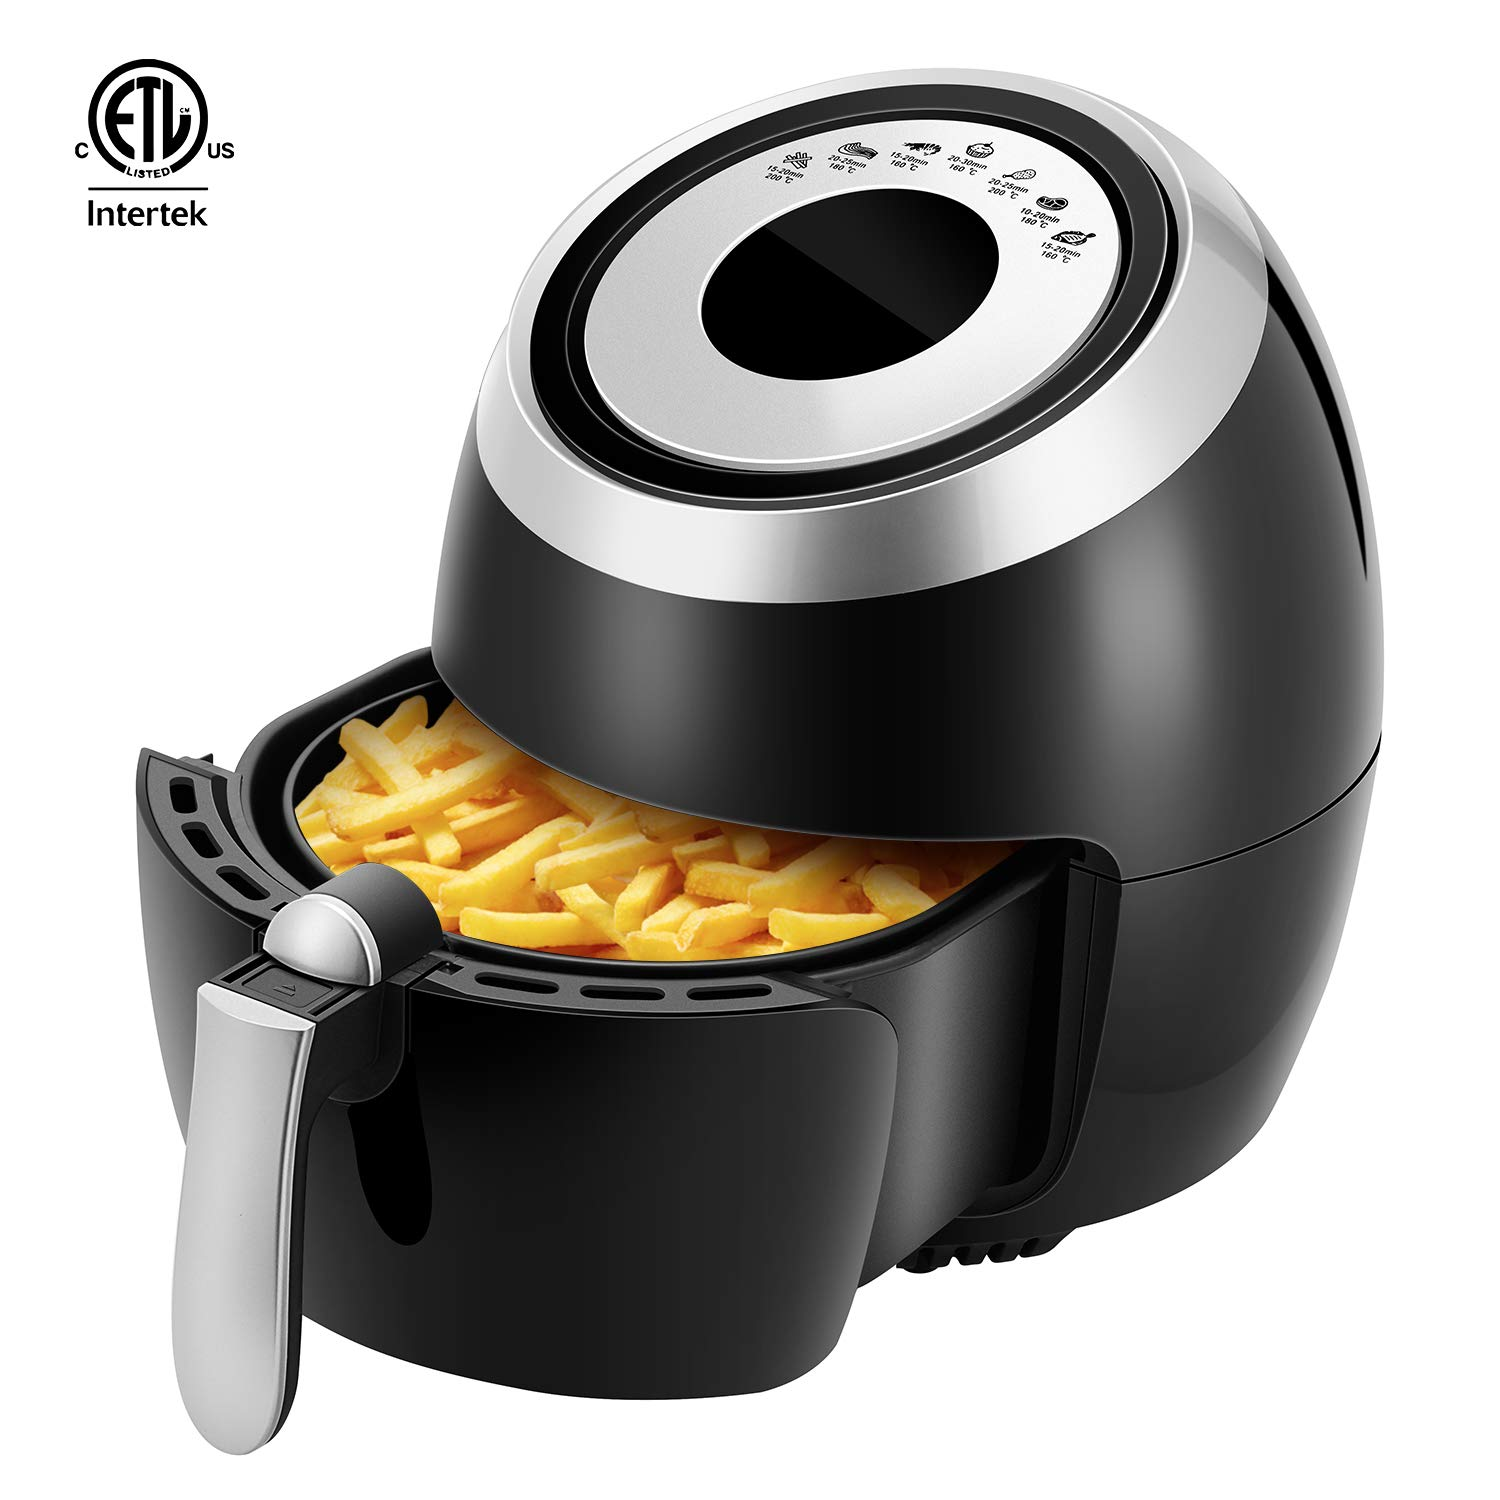 Electric Hot Air Fryer Oven Oilless Cooker 32 Recipes Auto Shut Off Nonstick Fry Basket LED Digital Touchscreen with 7 Cooking Presets Air Fryer XL Temp//Time Control 1400W Dishwasher Safe